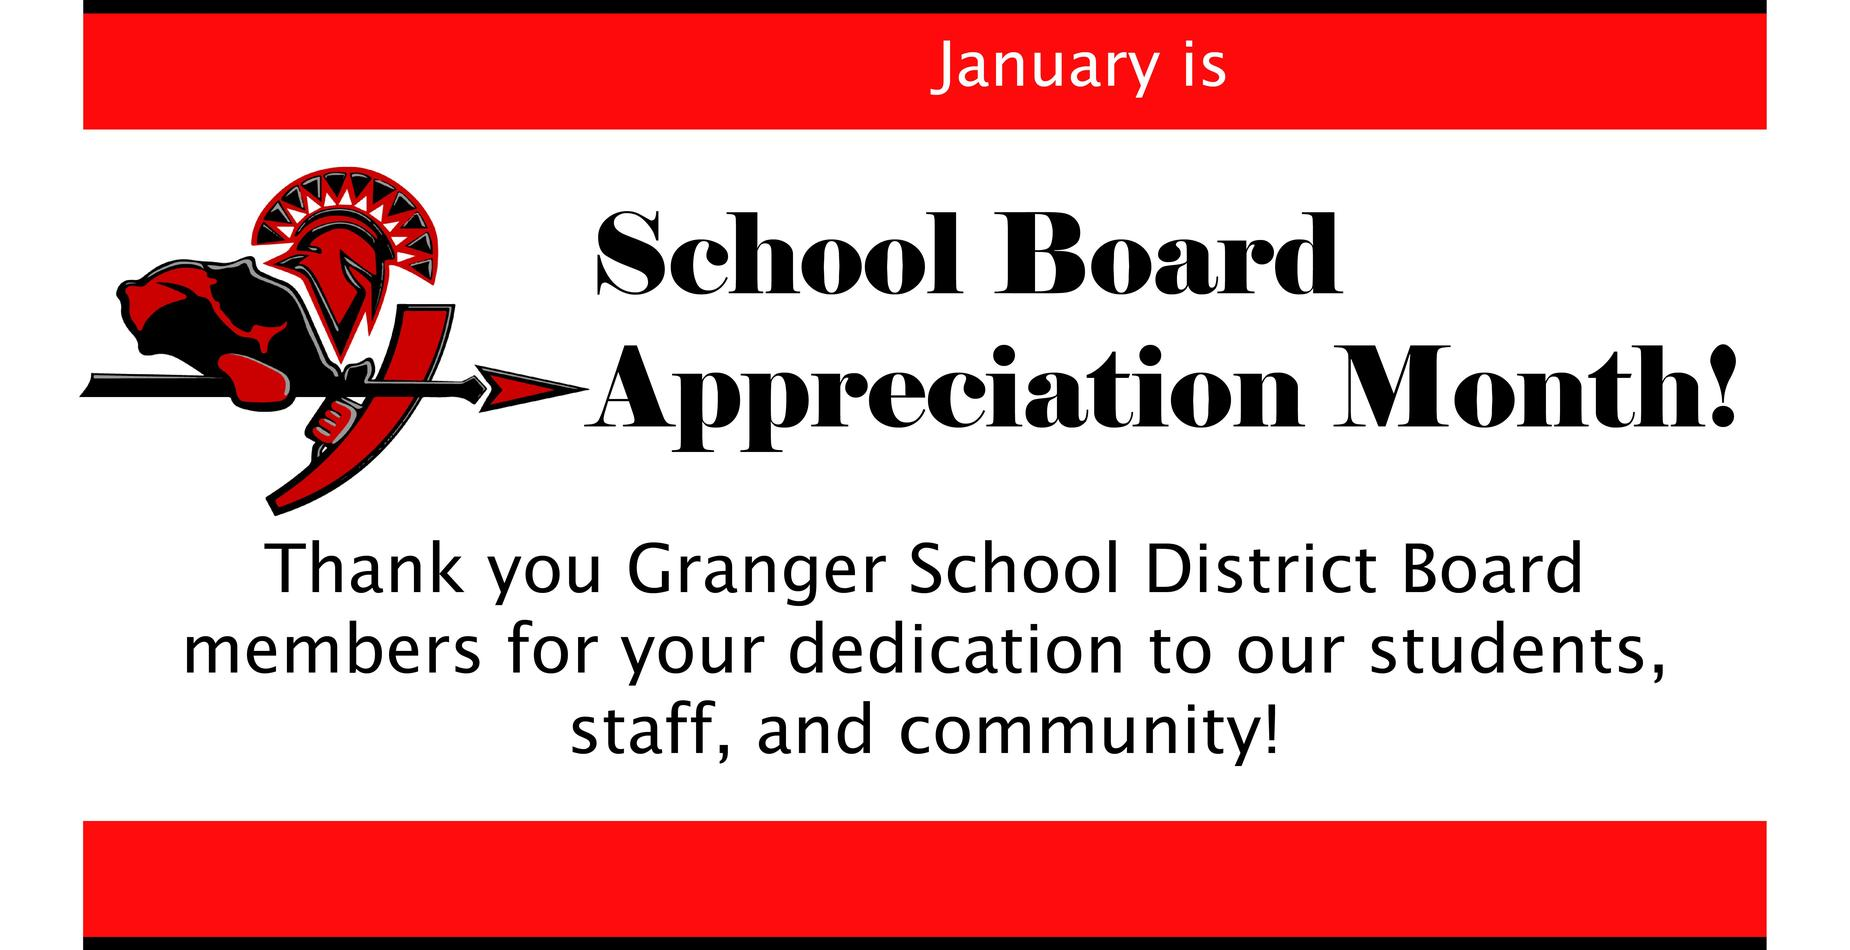 Photo thanking Granger board members for their hard work.